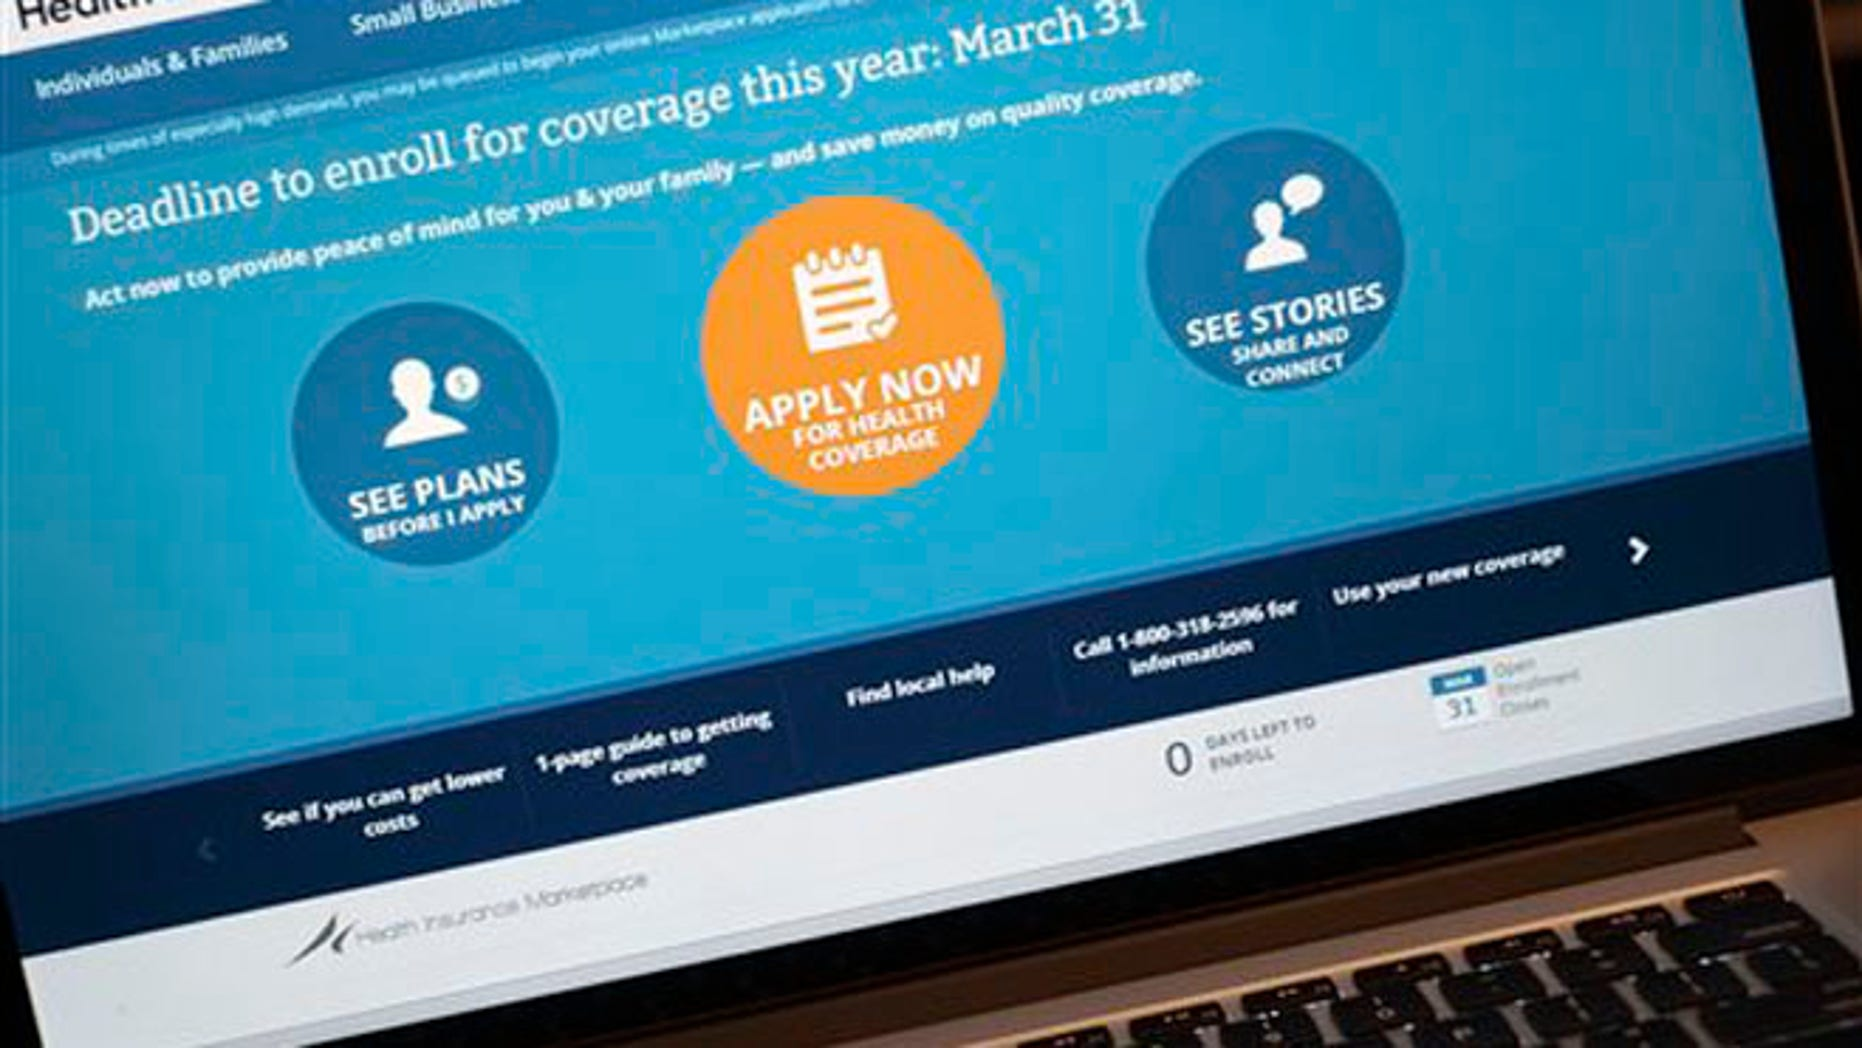 March 31, 2014: The HealthCare.gov website is shown on a laptop.